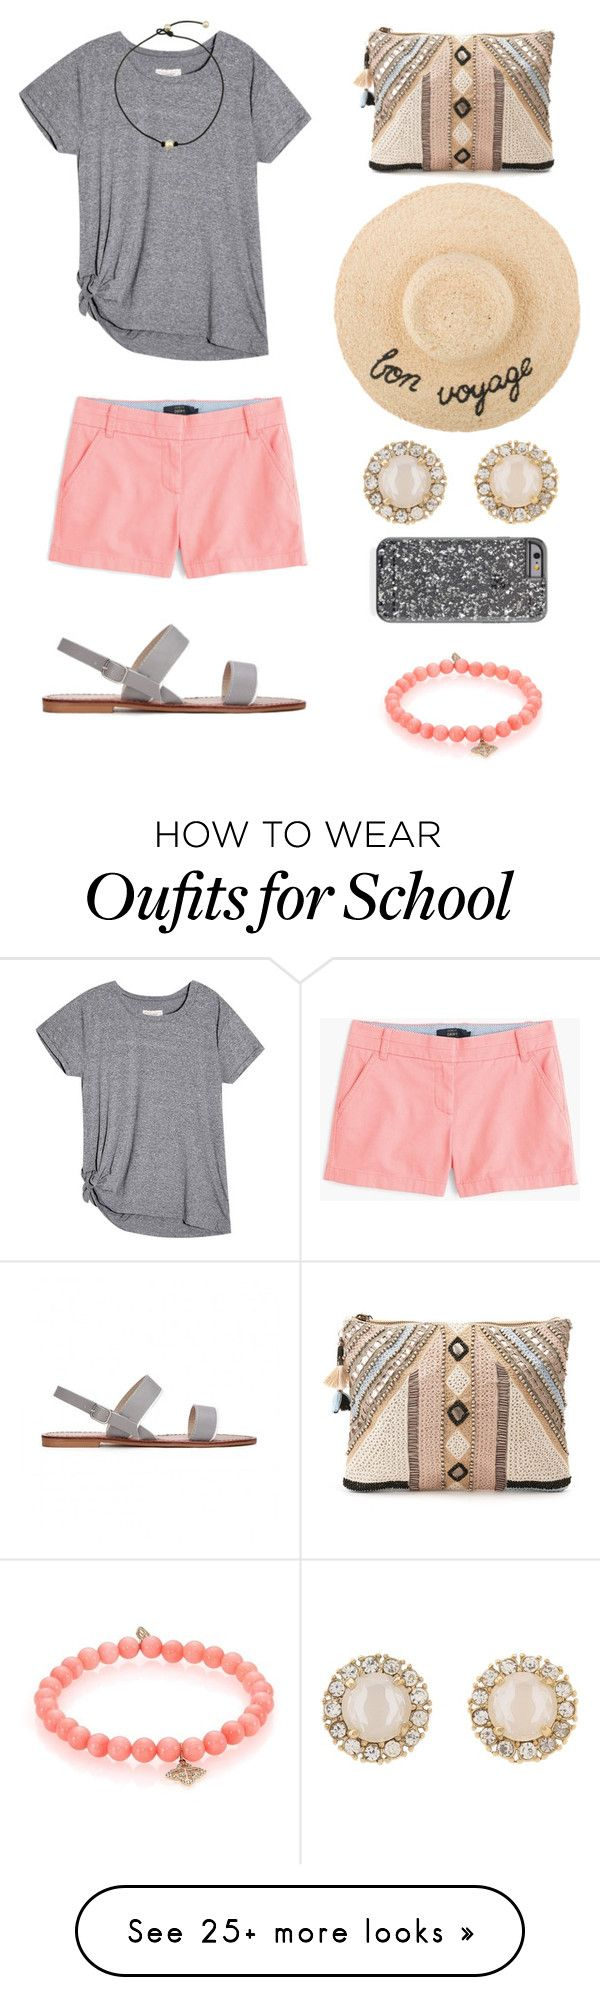 """school is almost over"" by madalynnmoo on Polyvore featuring J.Crew, BLANK, Kate Spade and Sydney Evan"